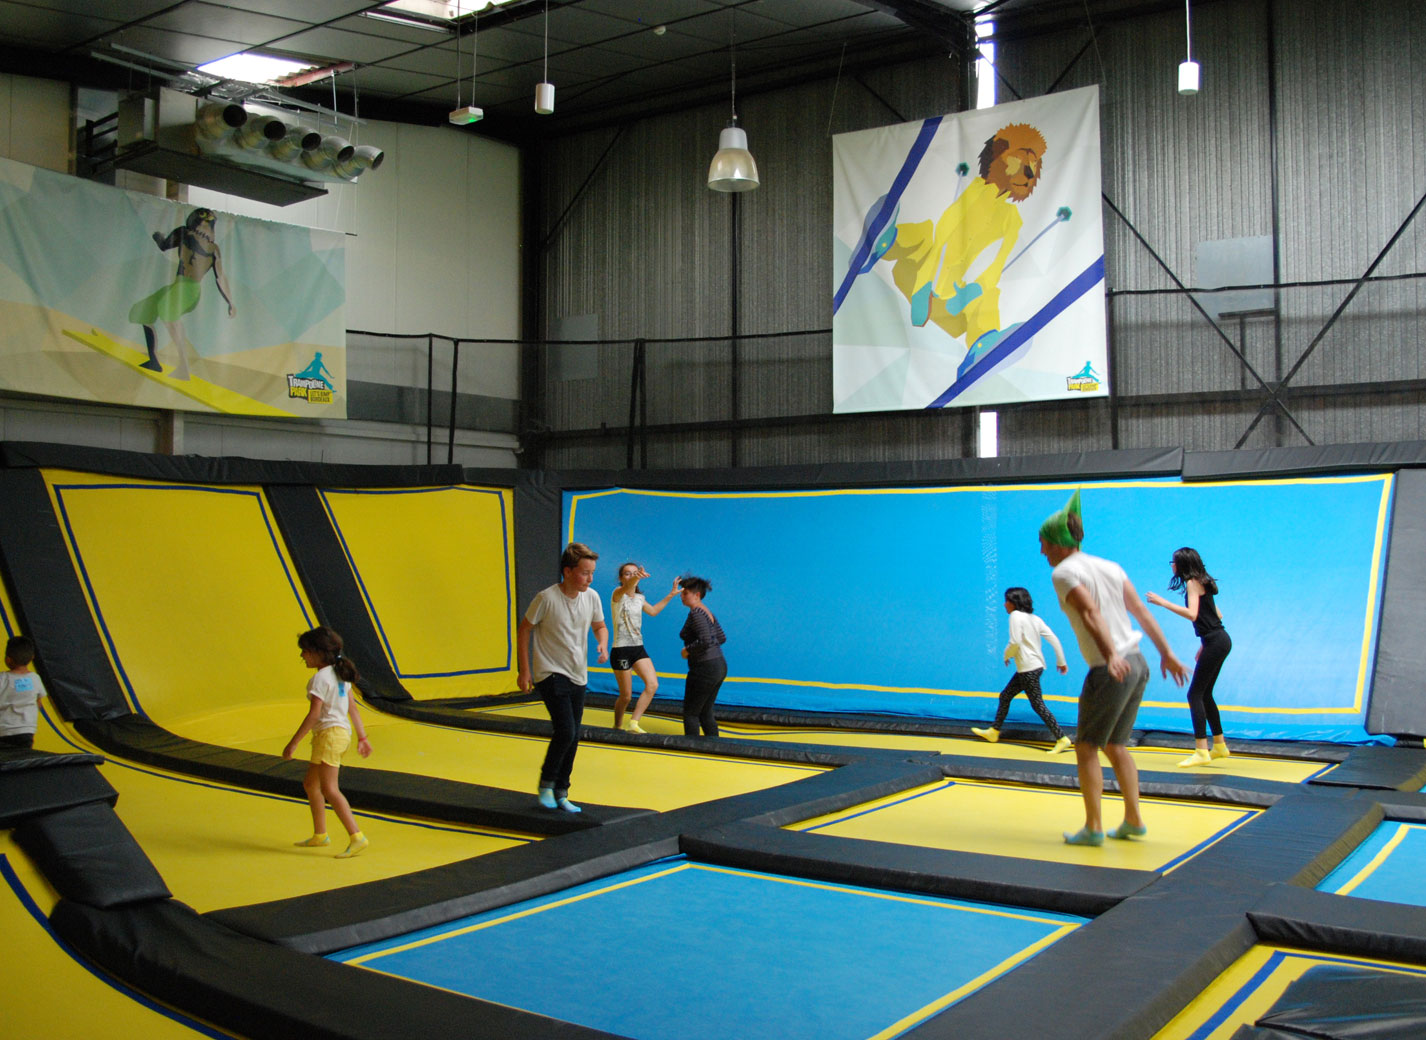 mission apollo 33 on a test le trampoline parc un air de bordeaux. Black Bedroom Furniture Sets. Home Design Ideas